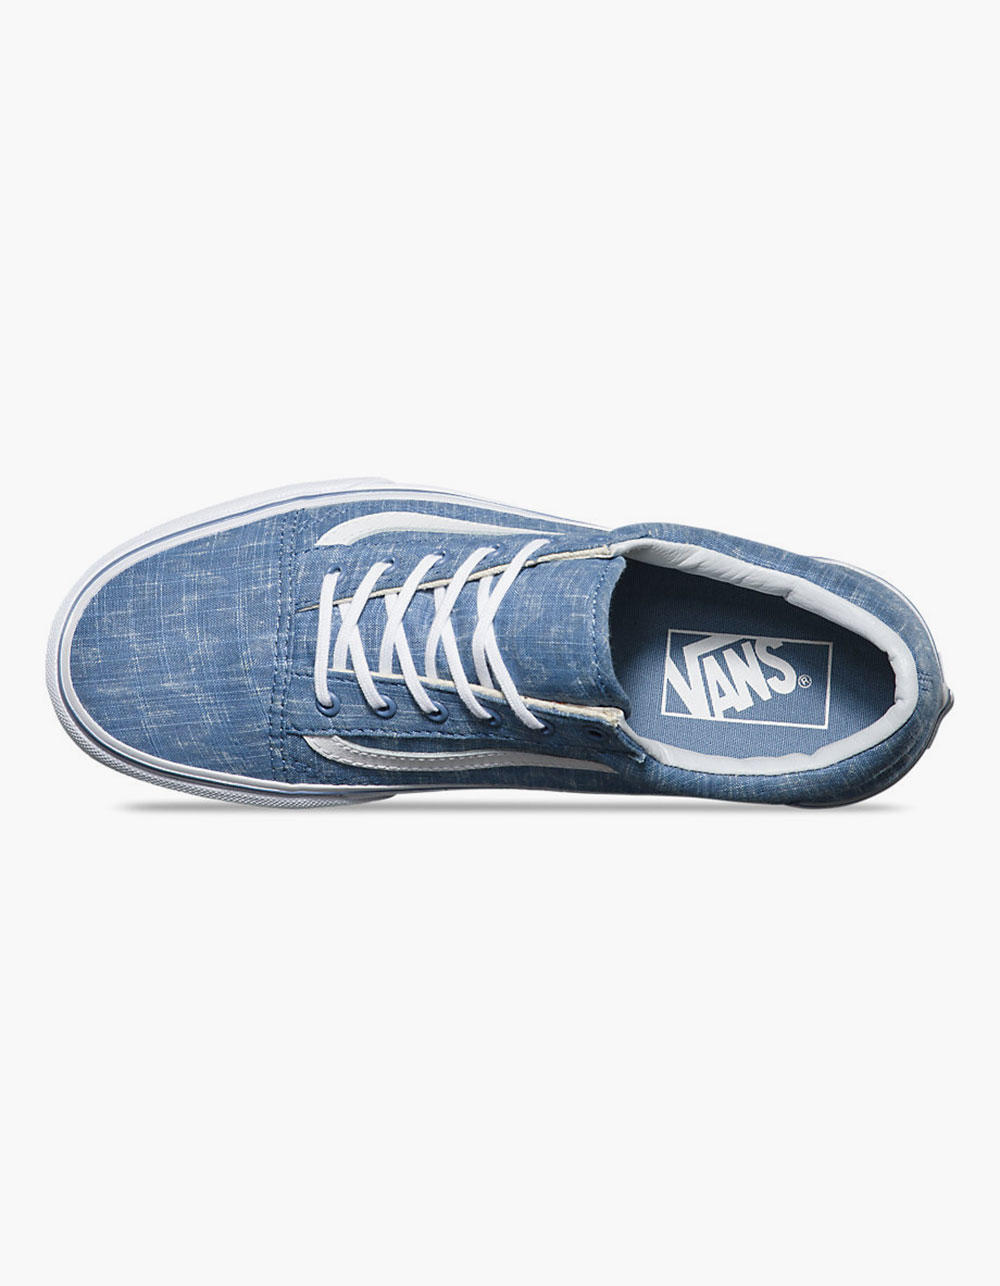 3536bfdbbc VANS Denim Chevron Old Skool Womens Shoes from Tilly s